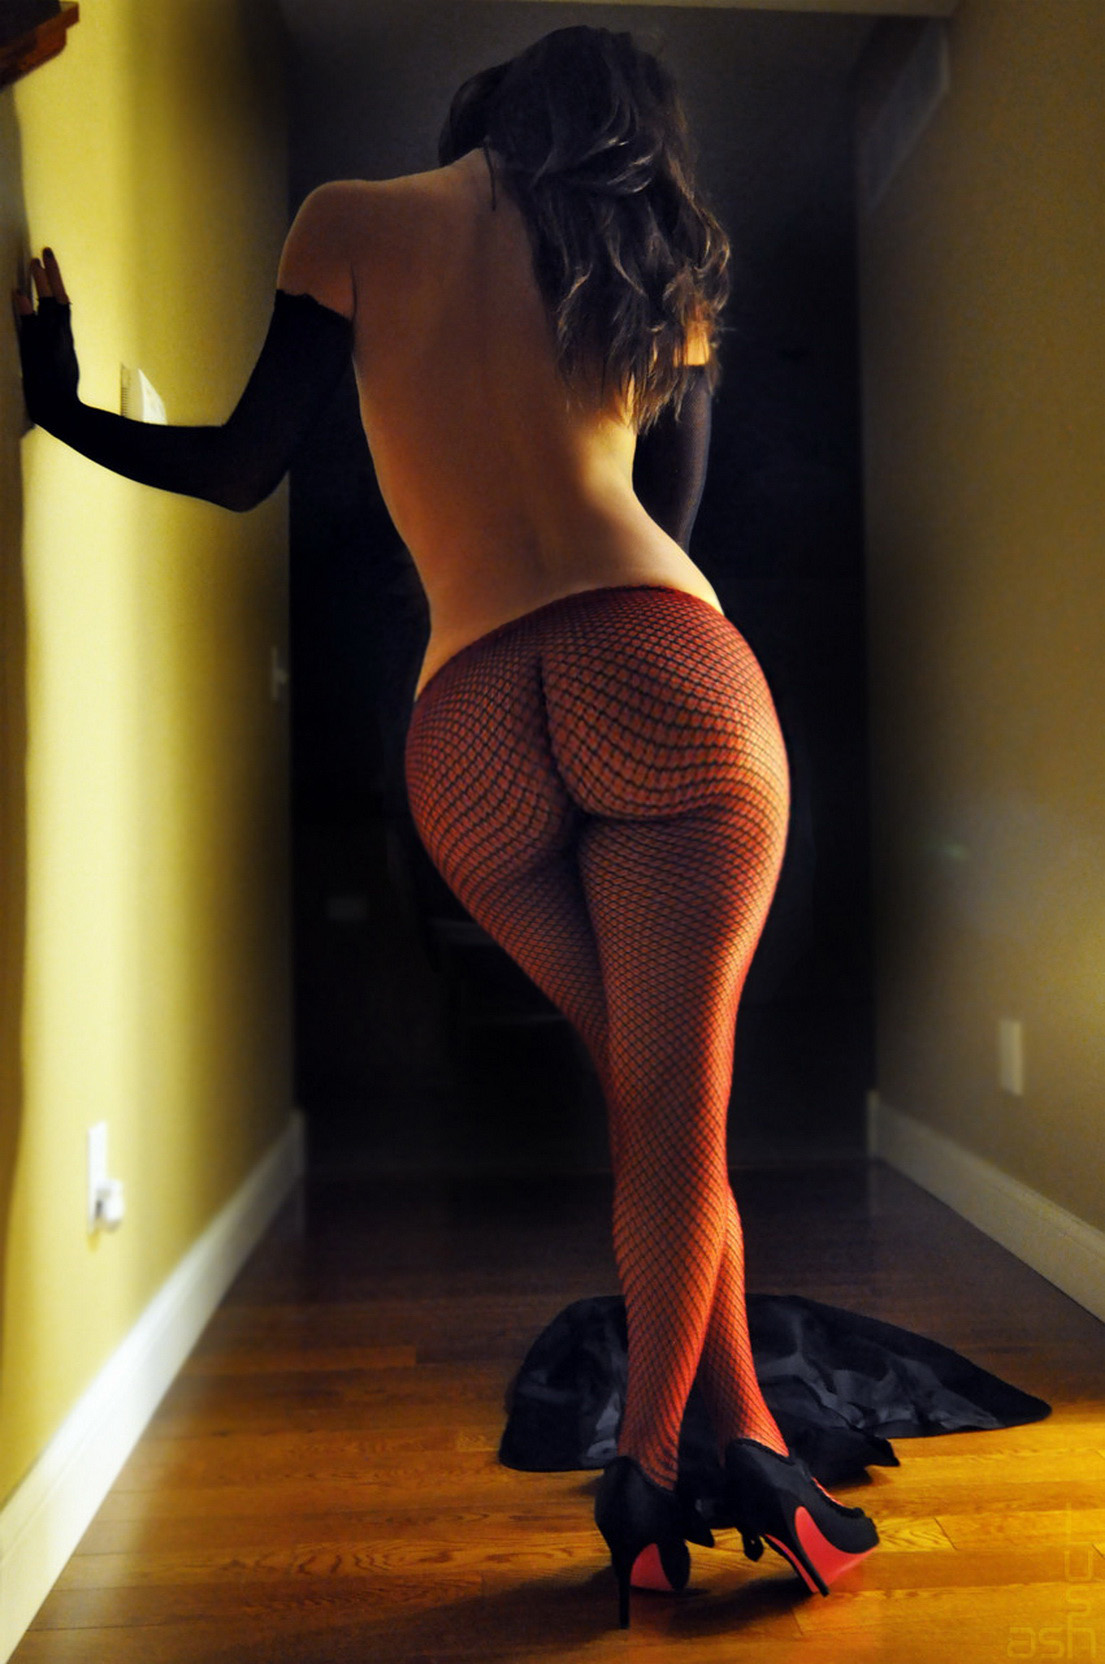 Booty in Fishnet - Booty of the Day